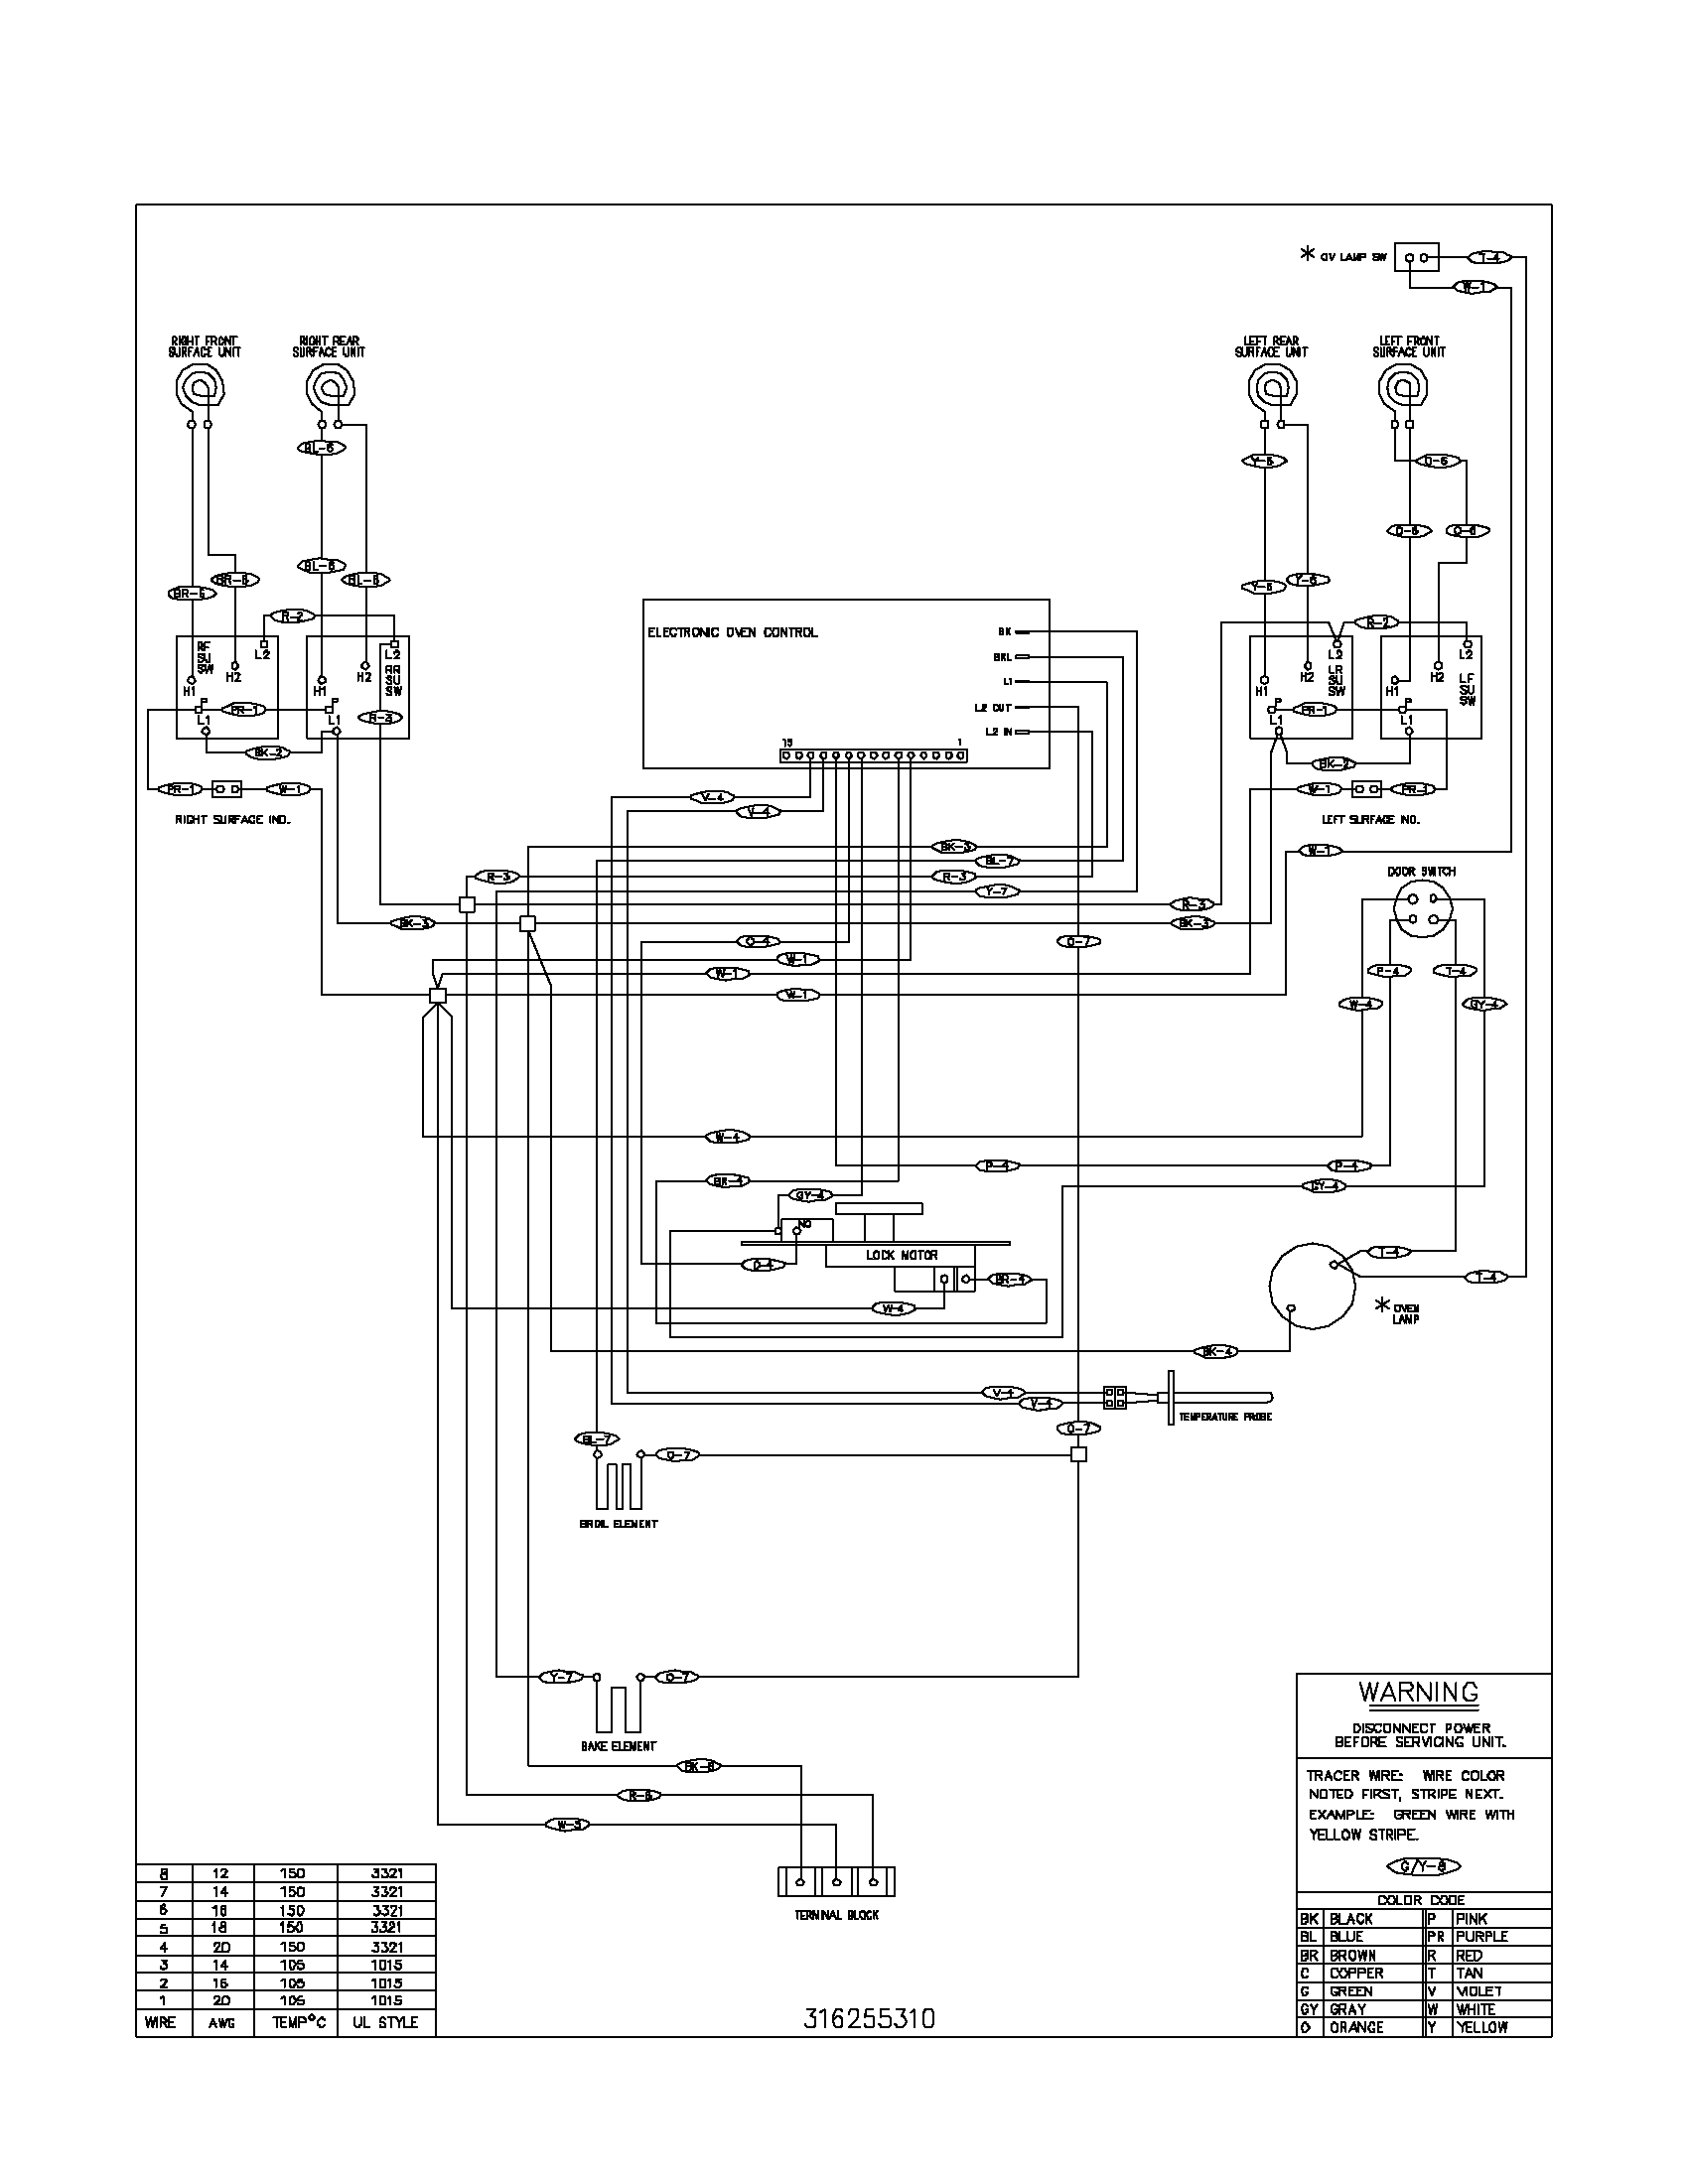 ge furnace wiring diagram similiar ge range wiring diagram keywords wiring diagram came 3 sheets stove oven cooktop ge general